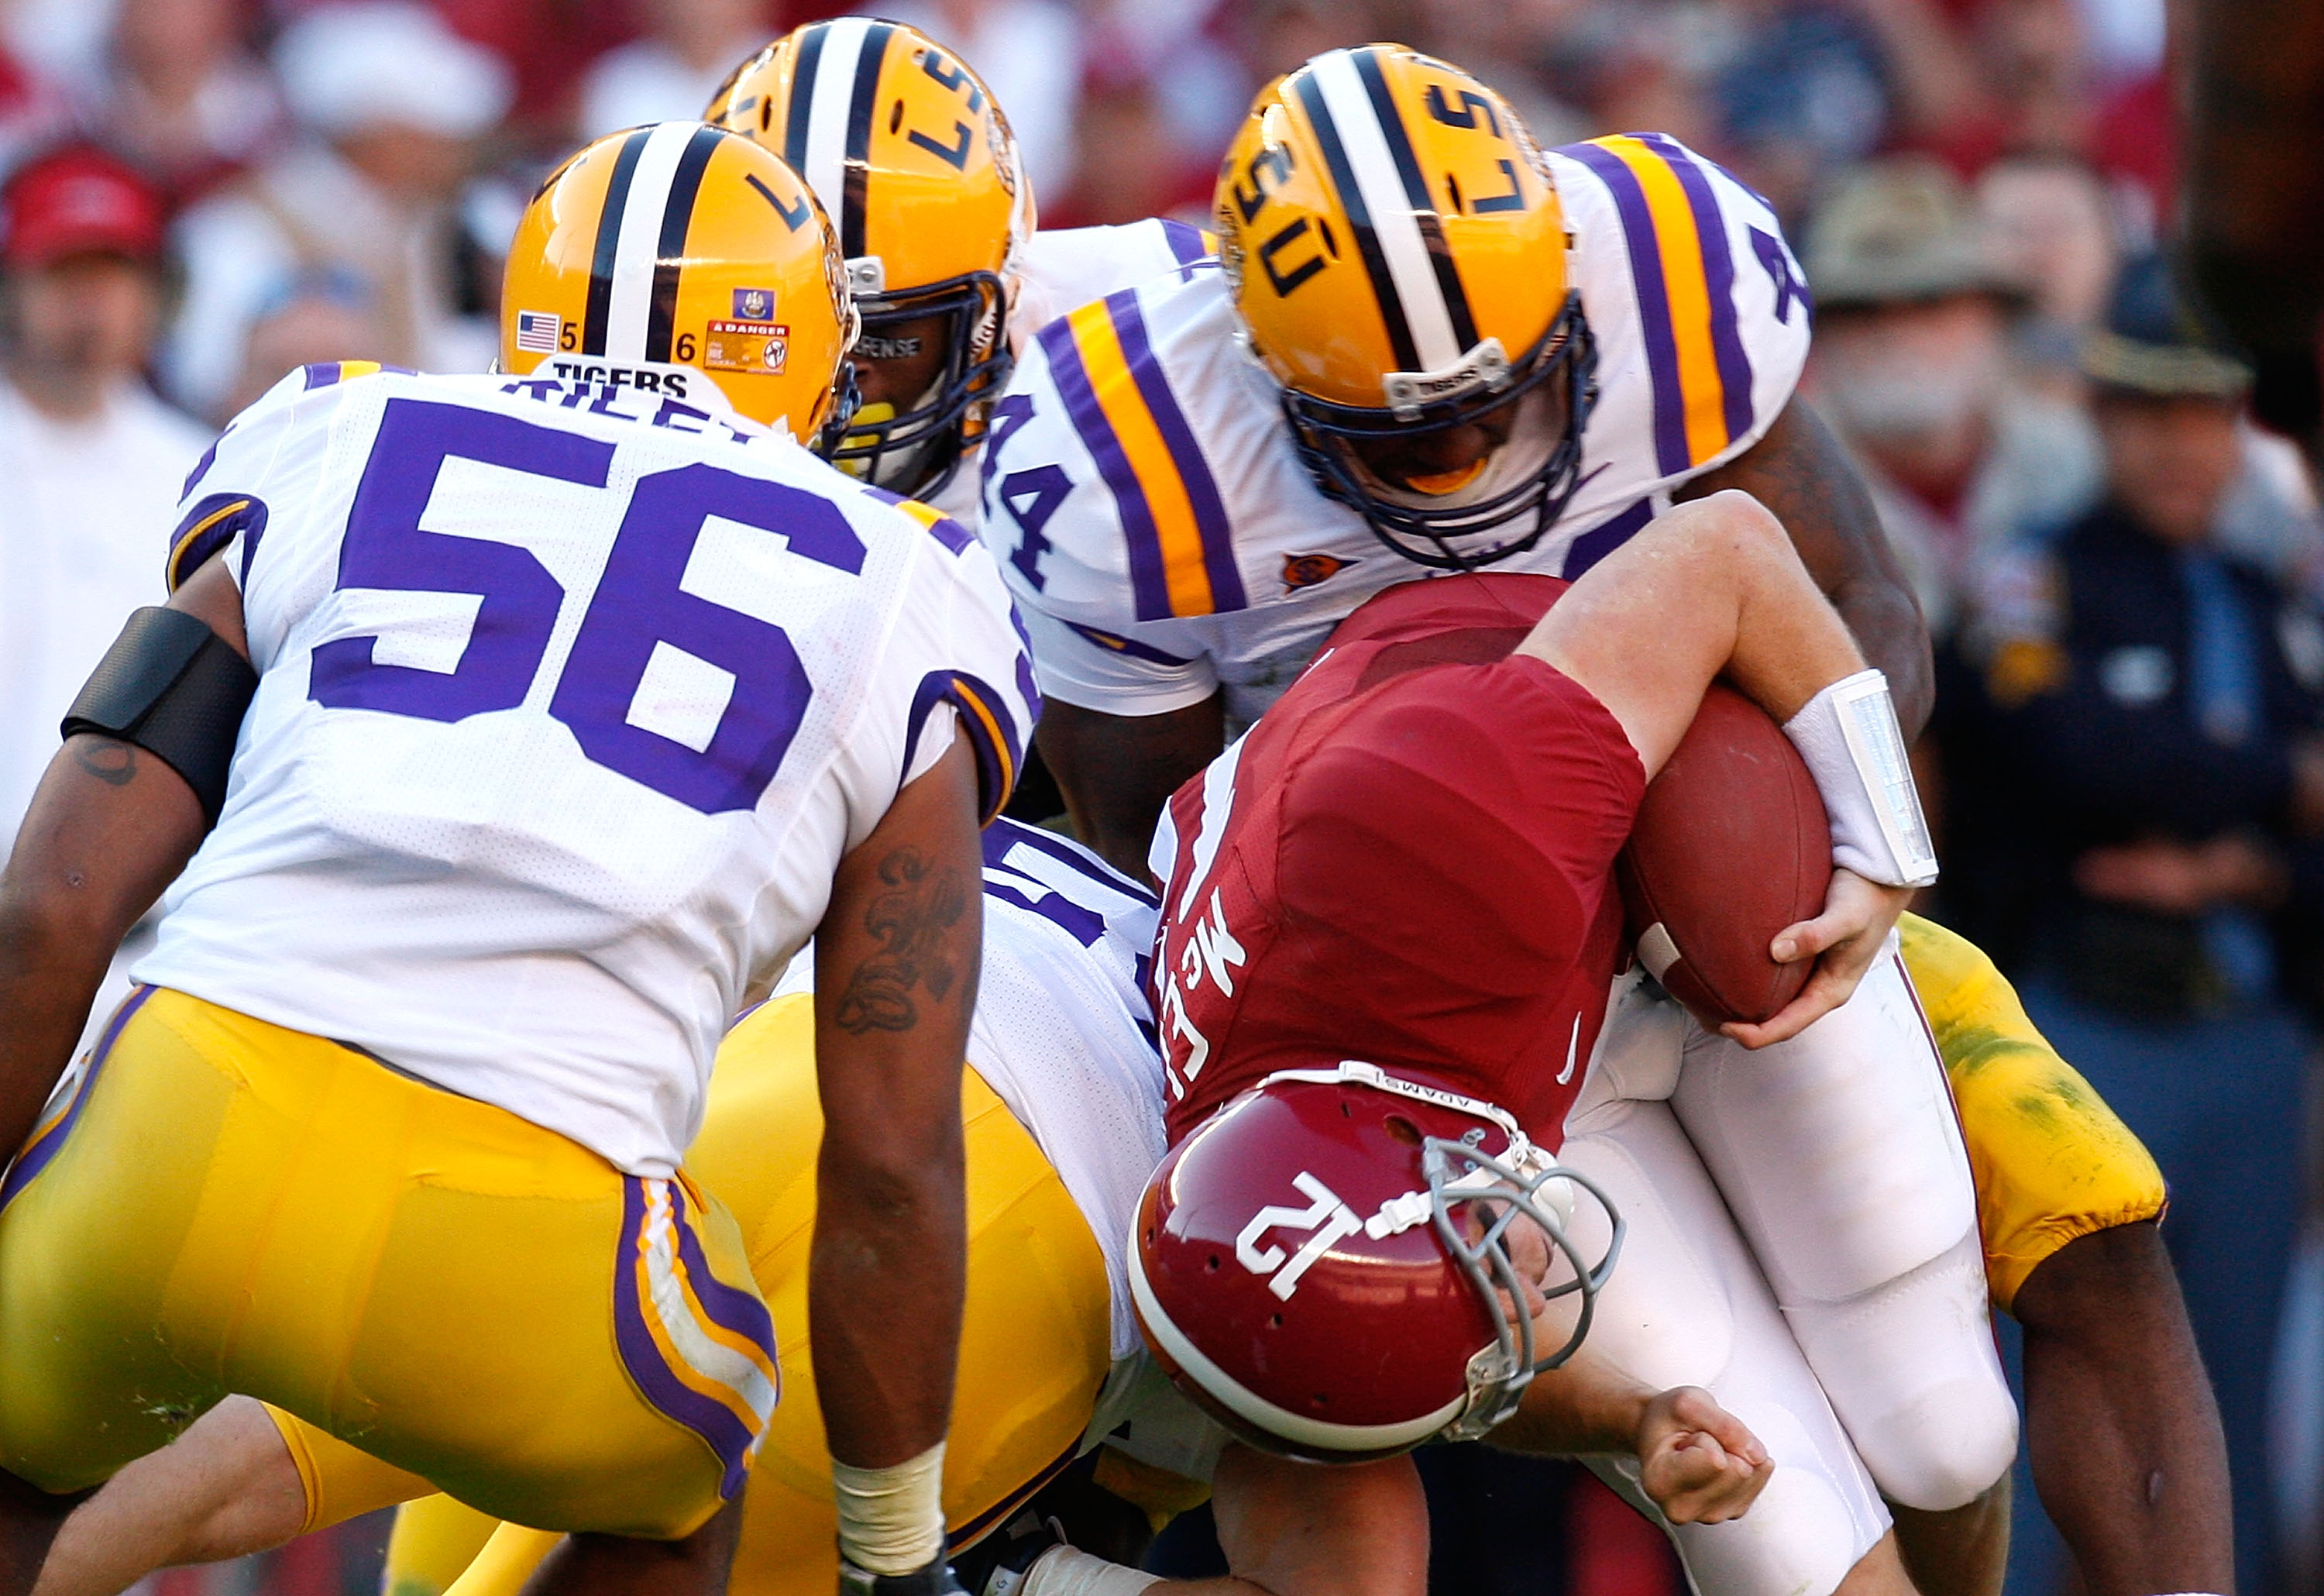 TUSCALOOSA, AL - NOVEMBER 07:  Perry Riley #56 and Danny McCray #44 of the Louisiana State University Tigers tackle quarterback Greg McElroy #12 of the Alabama Crimson Tide at Bryant-Denny Stadium on November 7, 2009 in Tuscaloosa, Alabama.  (Photo by Kev